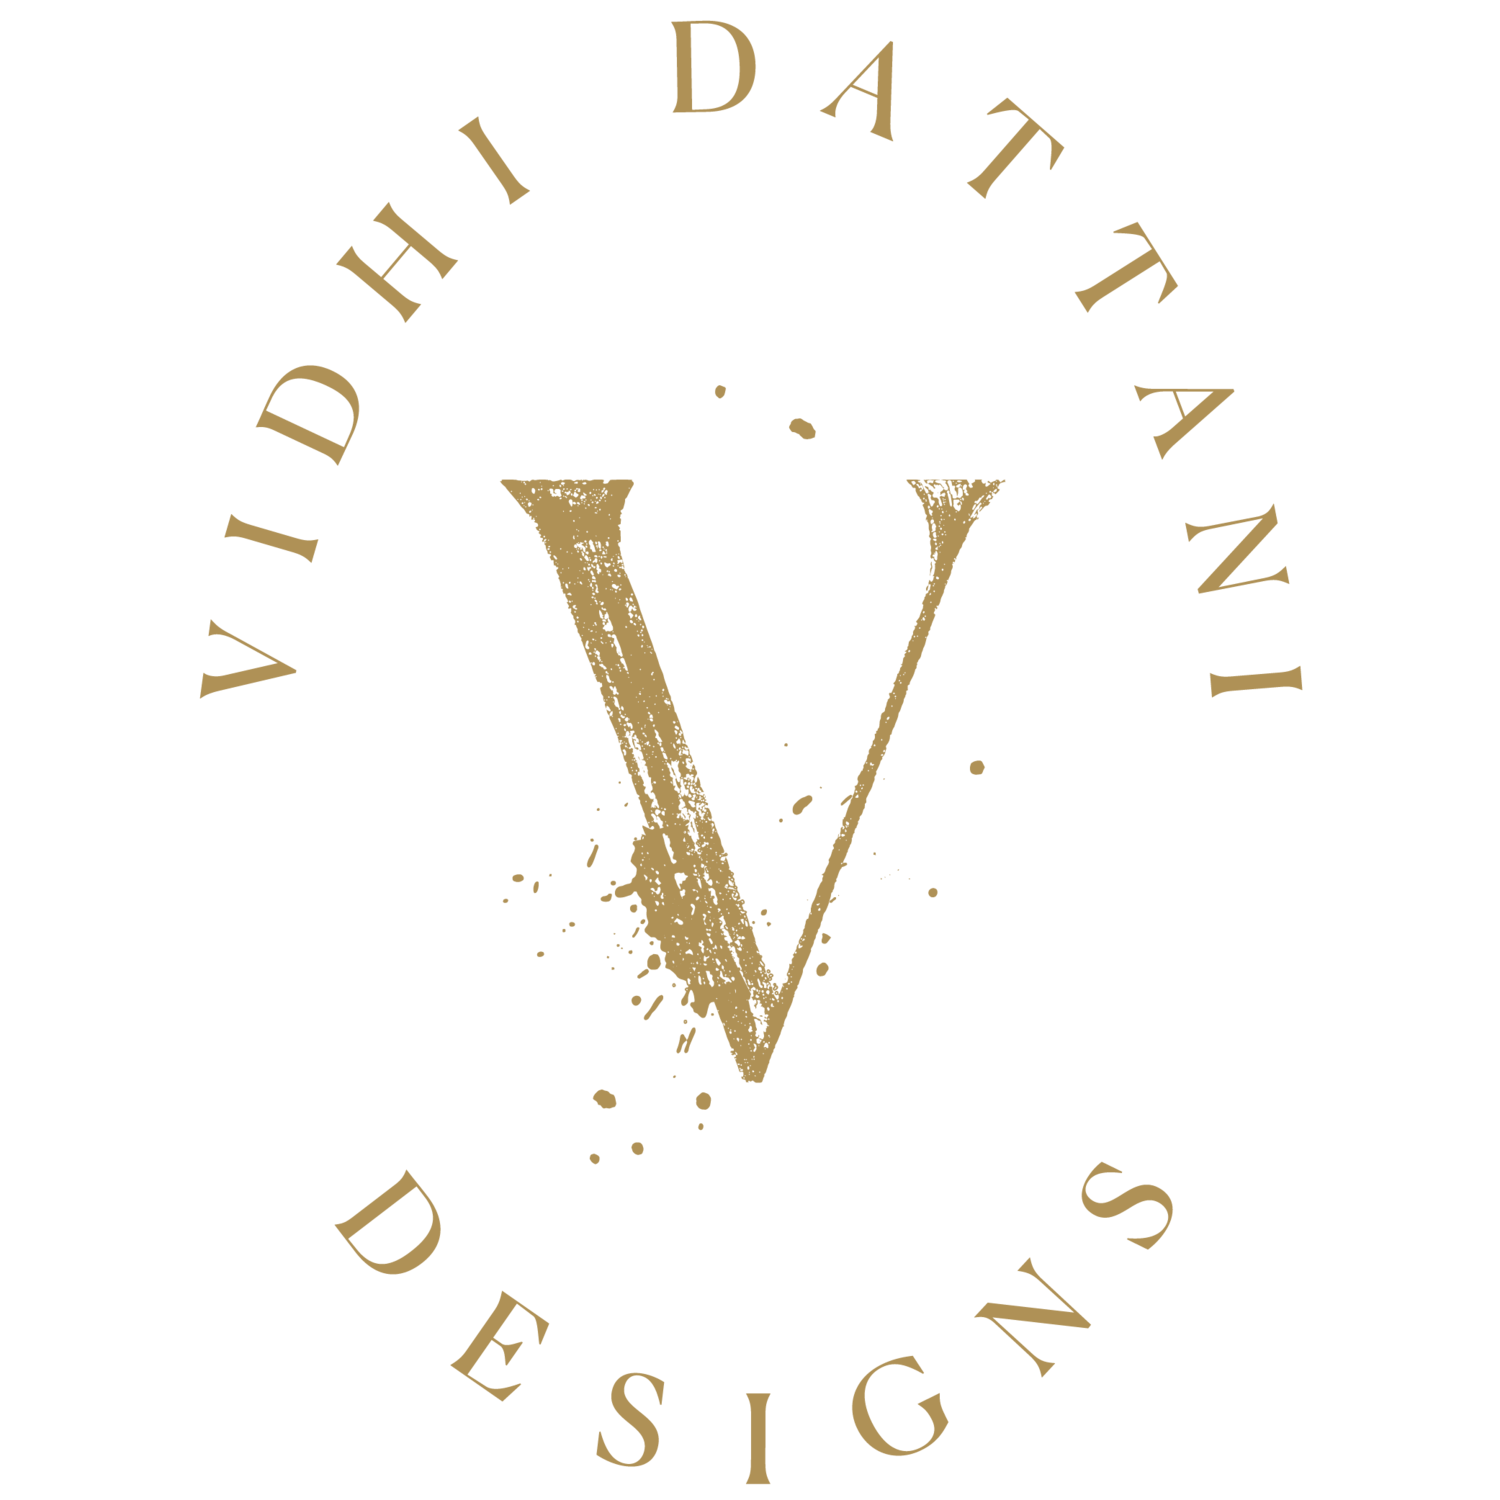 Vidhi Dattani Designs | Artisan Stationery and Branding